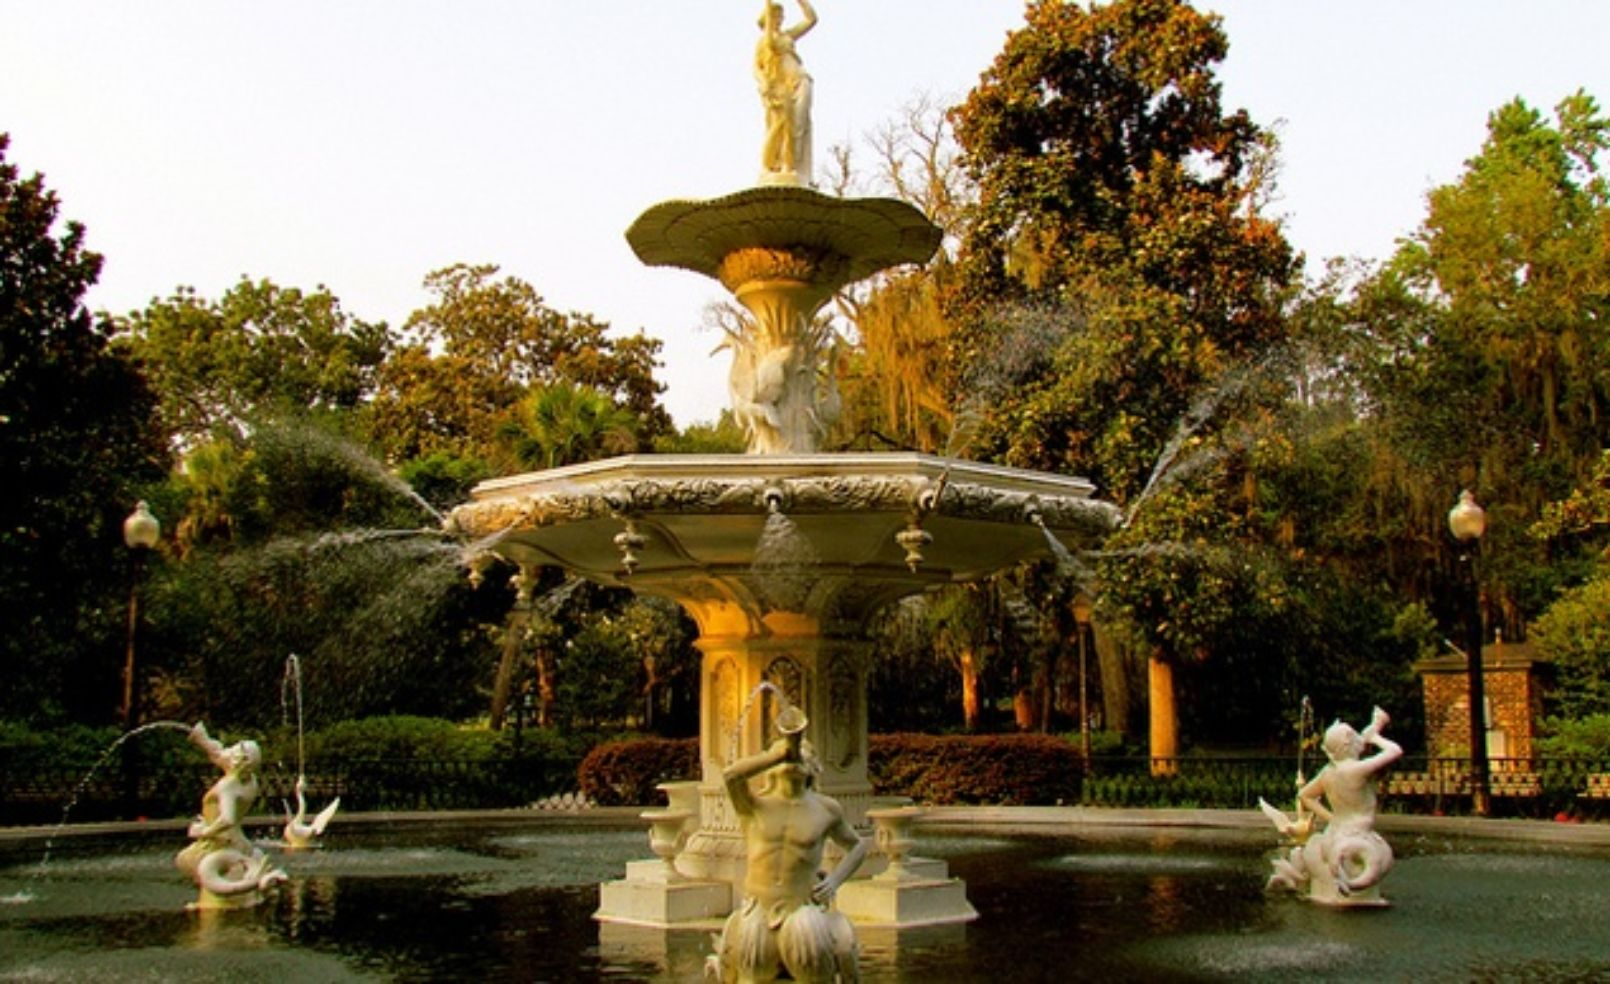 fountain-in-forsyth-park-savannah-georgia